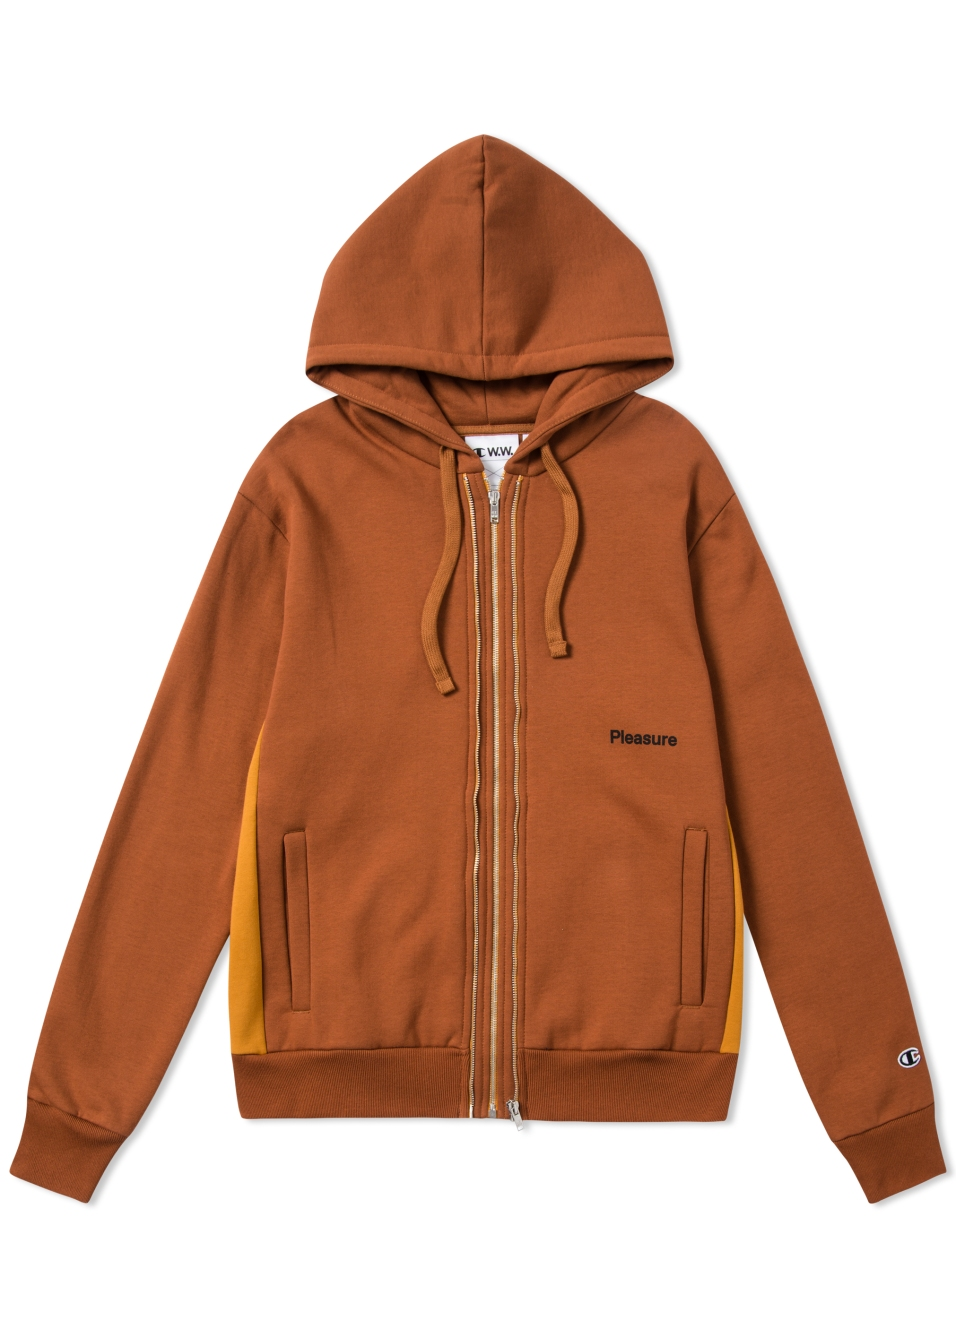 CWW_Isaac_jacket_Caramel_High